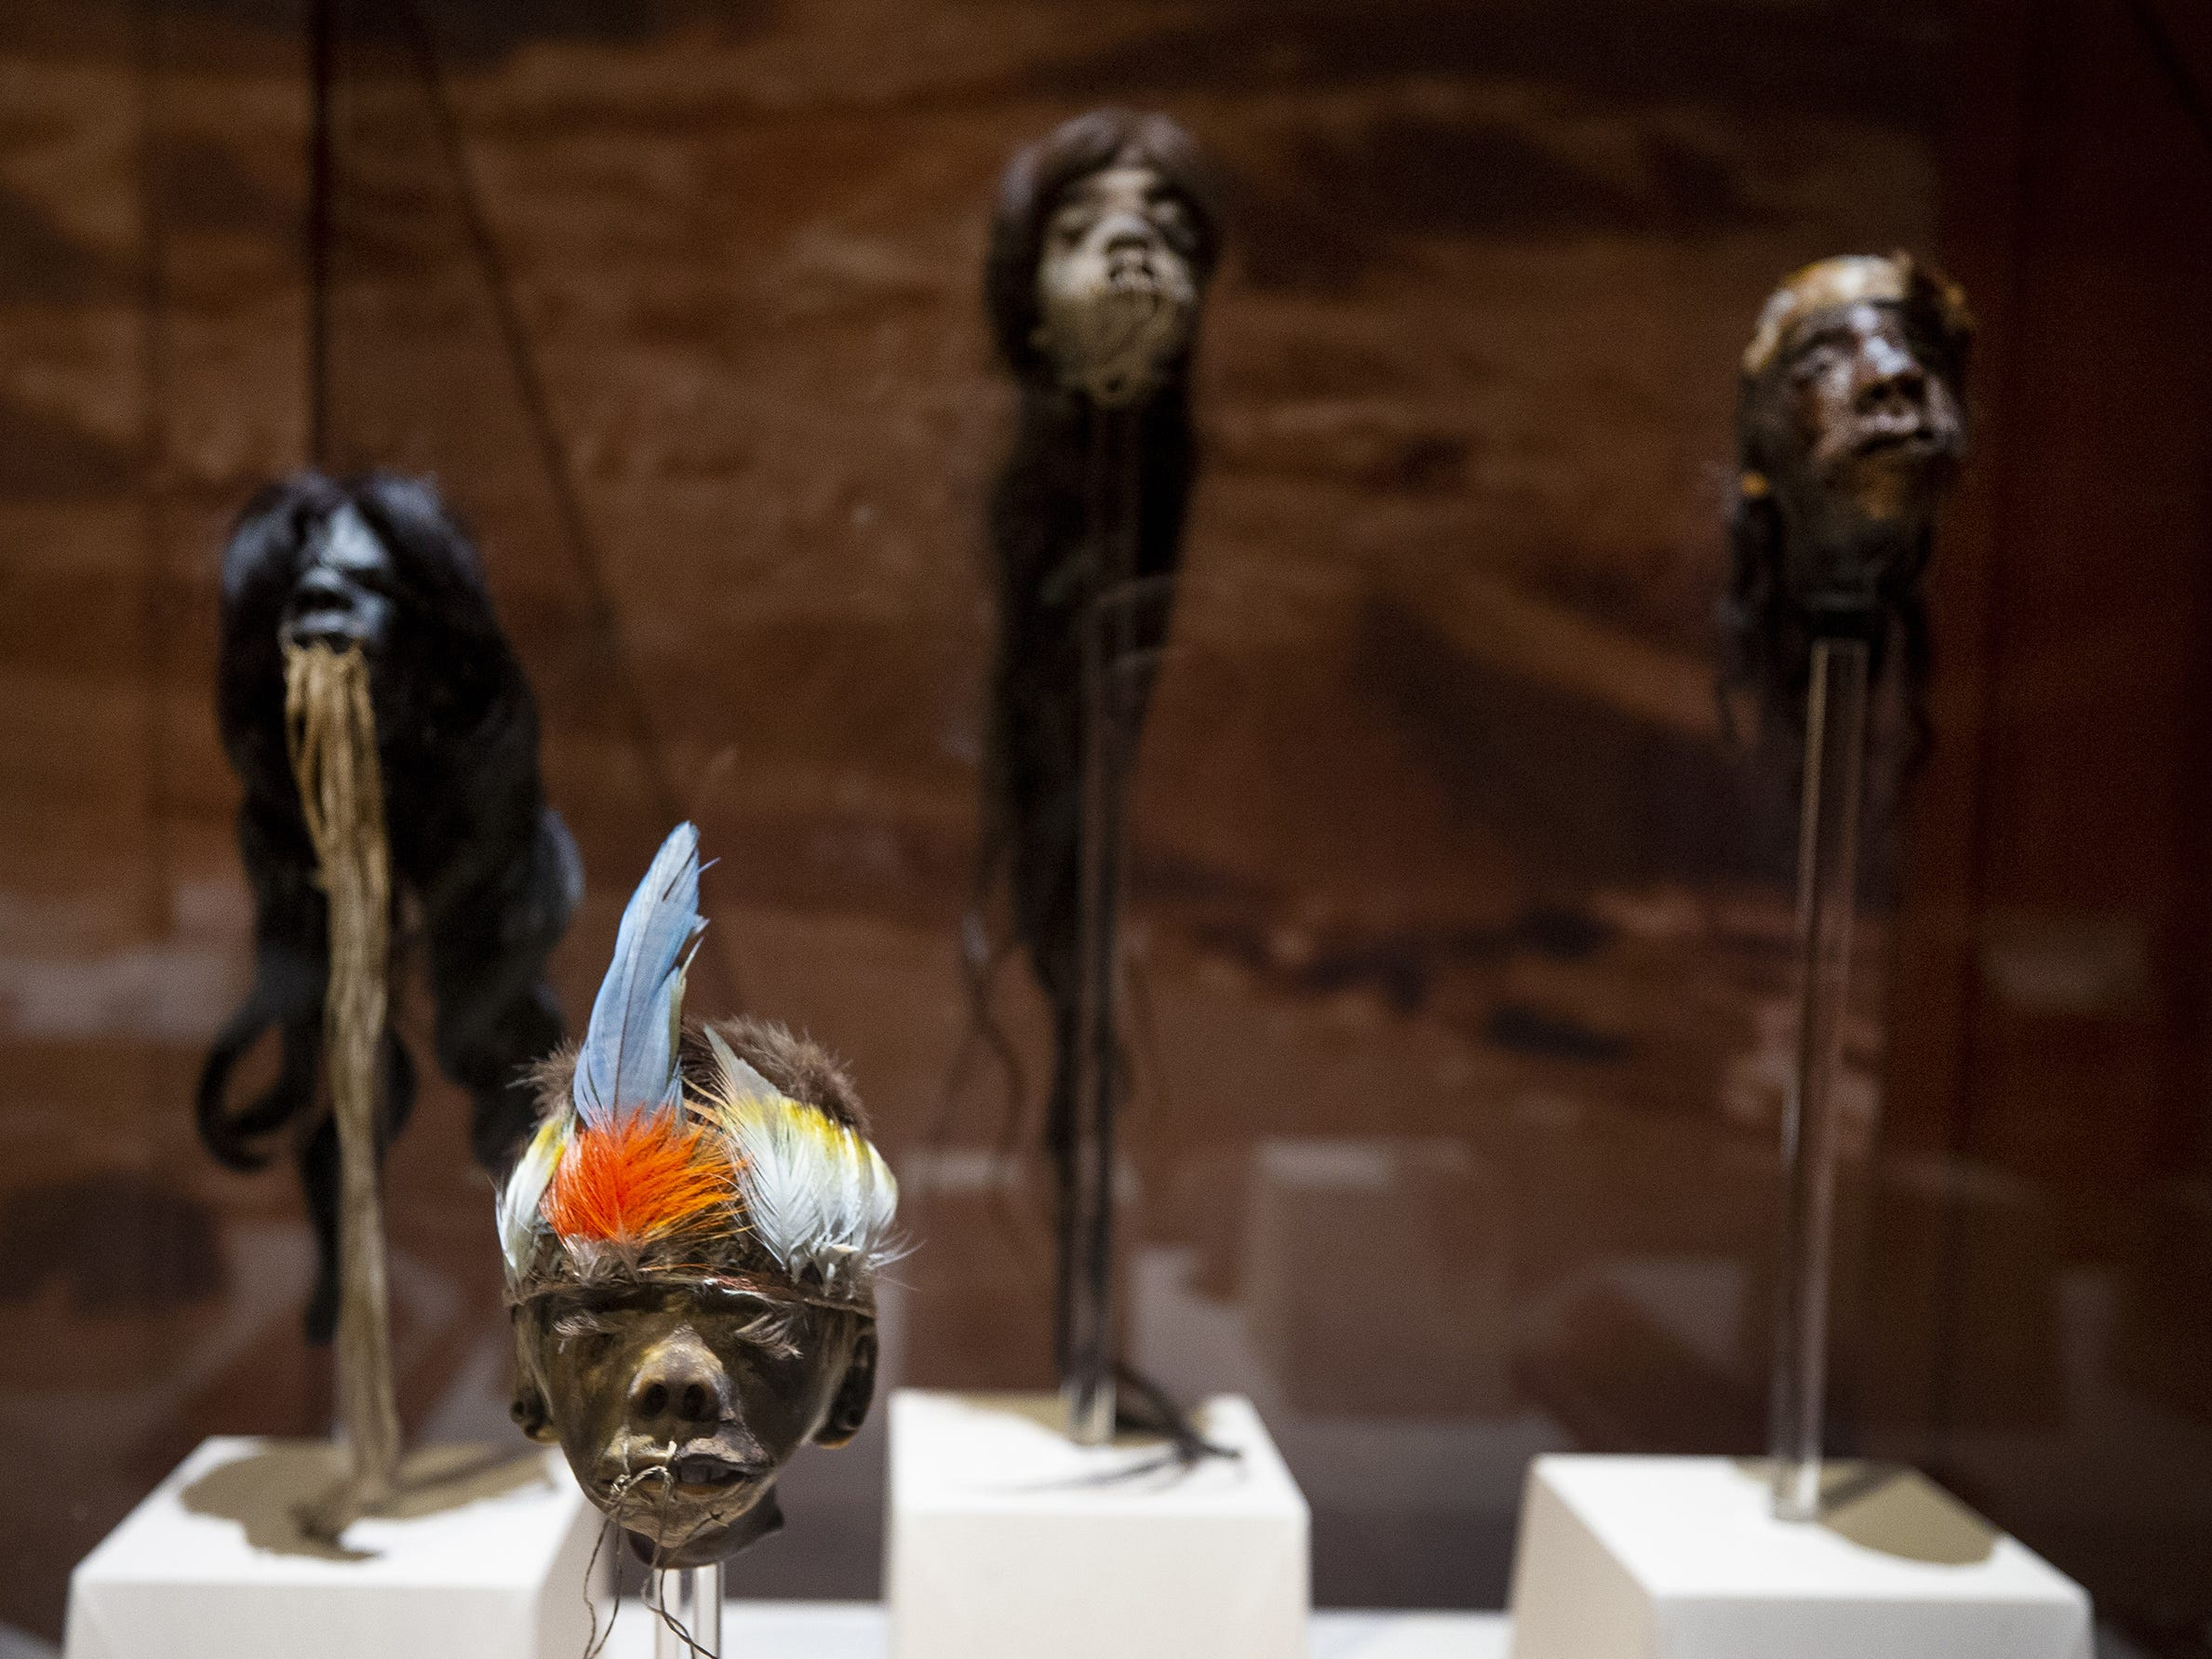 Mummies of the World: The Exhibition displays shrunken heads at the Arizona Science Center. The exhibit includes mummies from Egypt, Europe and the U.S. and is open to the public from Feb. 10 through Sept. 2, 2019.